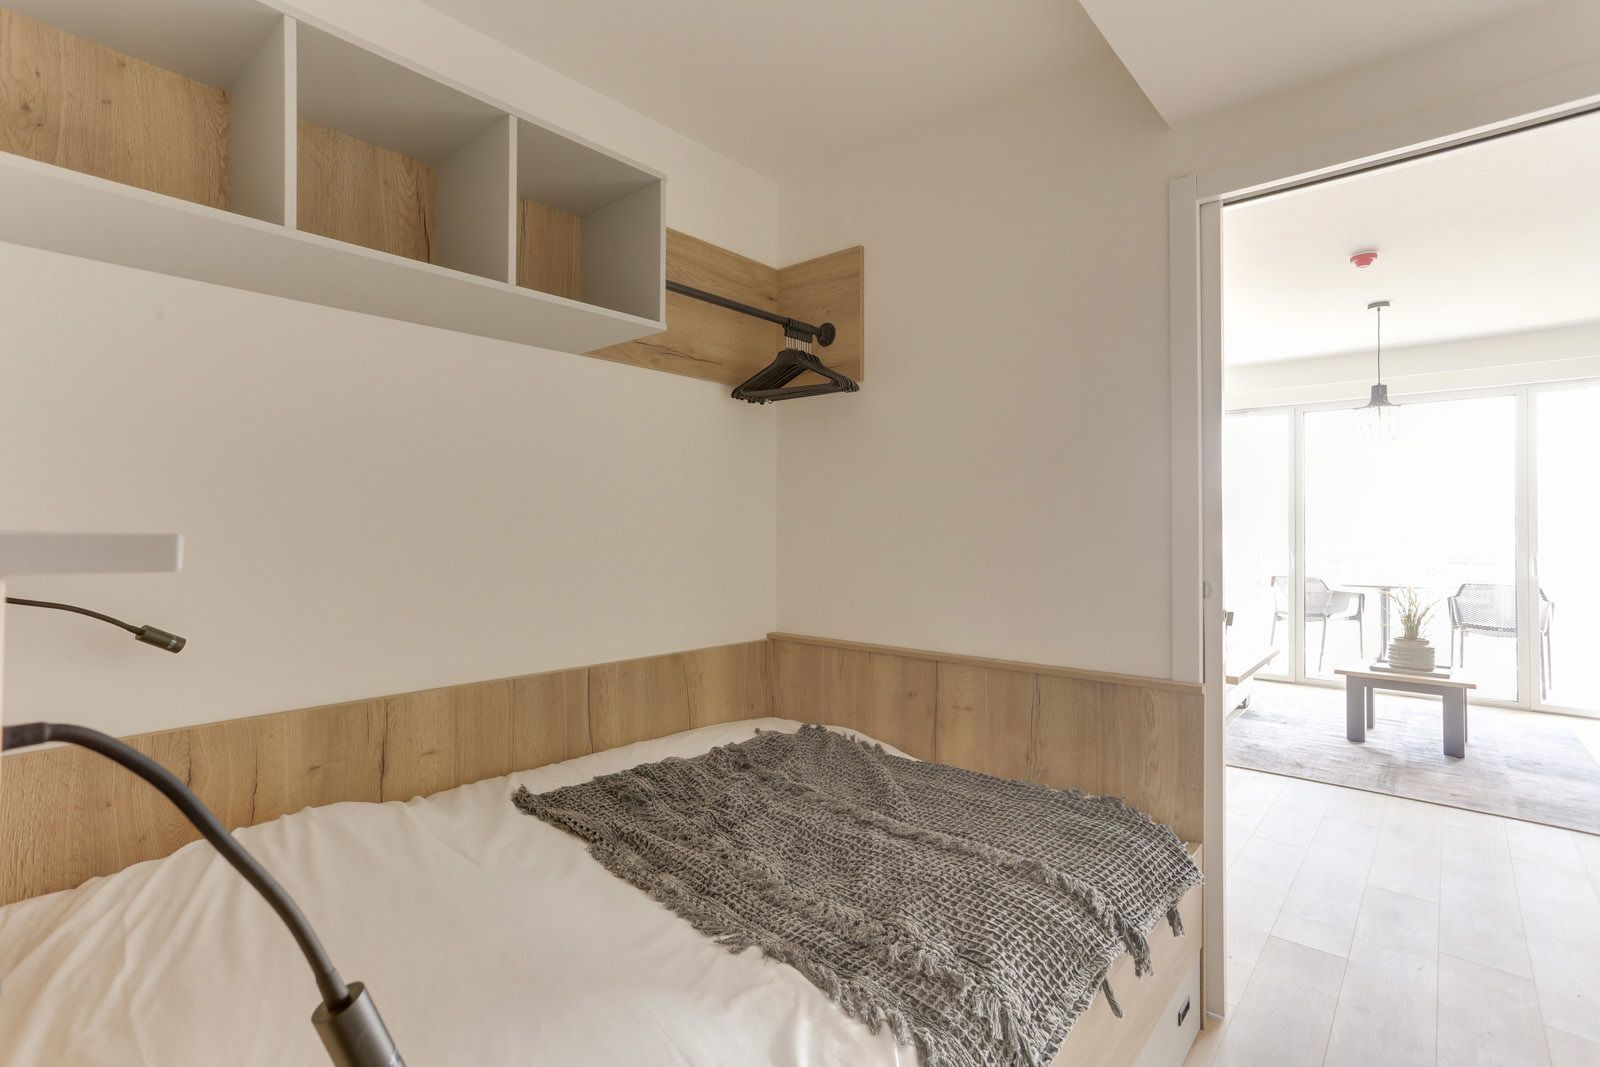 Studio for 4 people with double bed and balcony